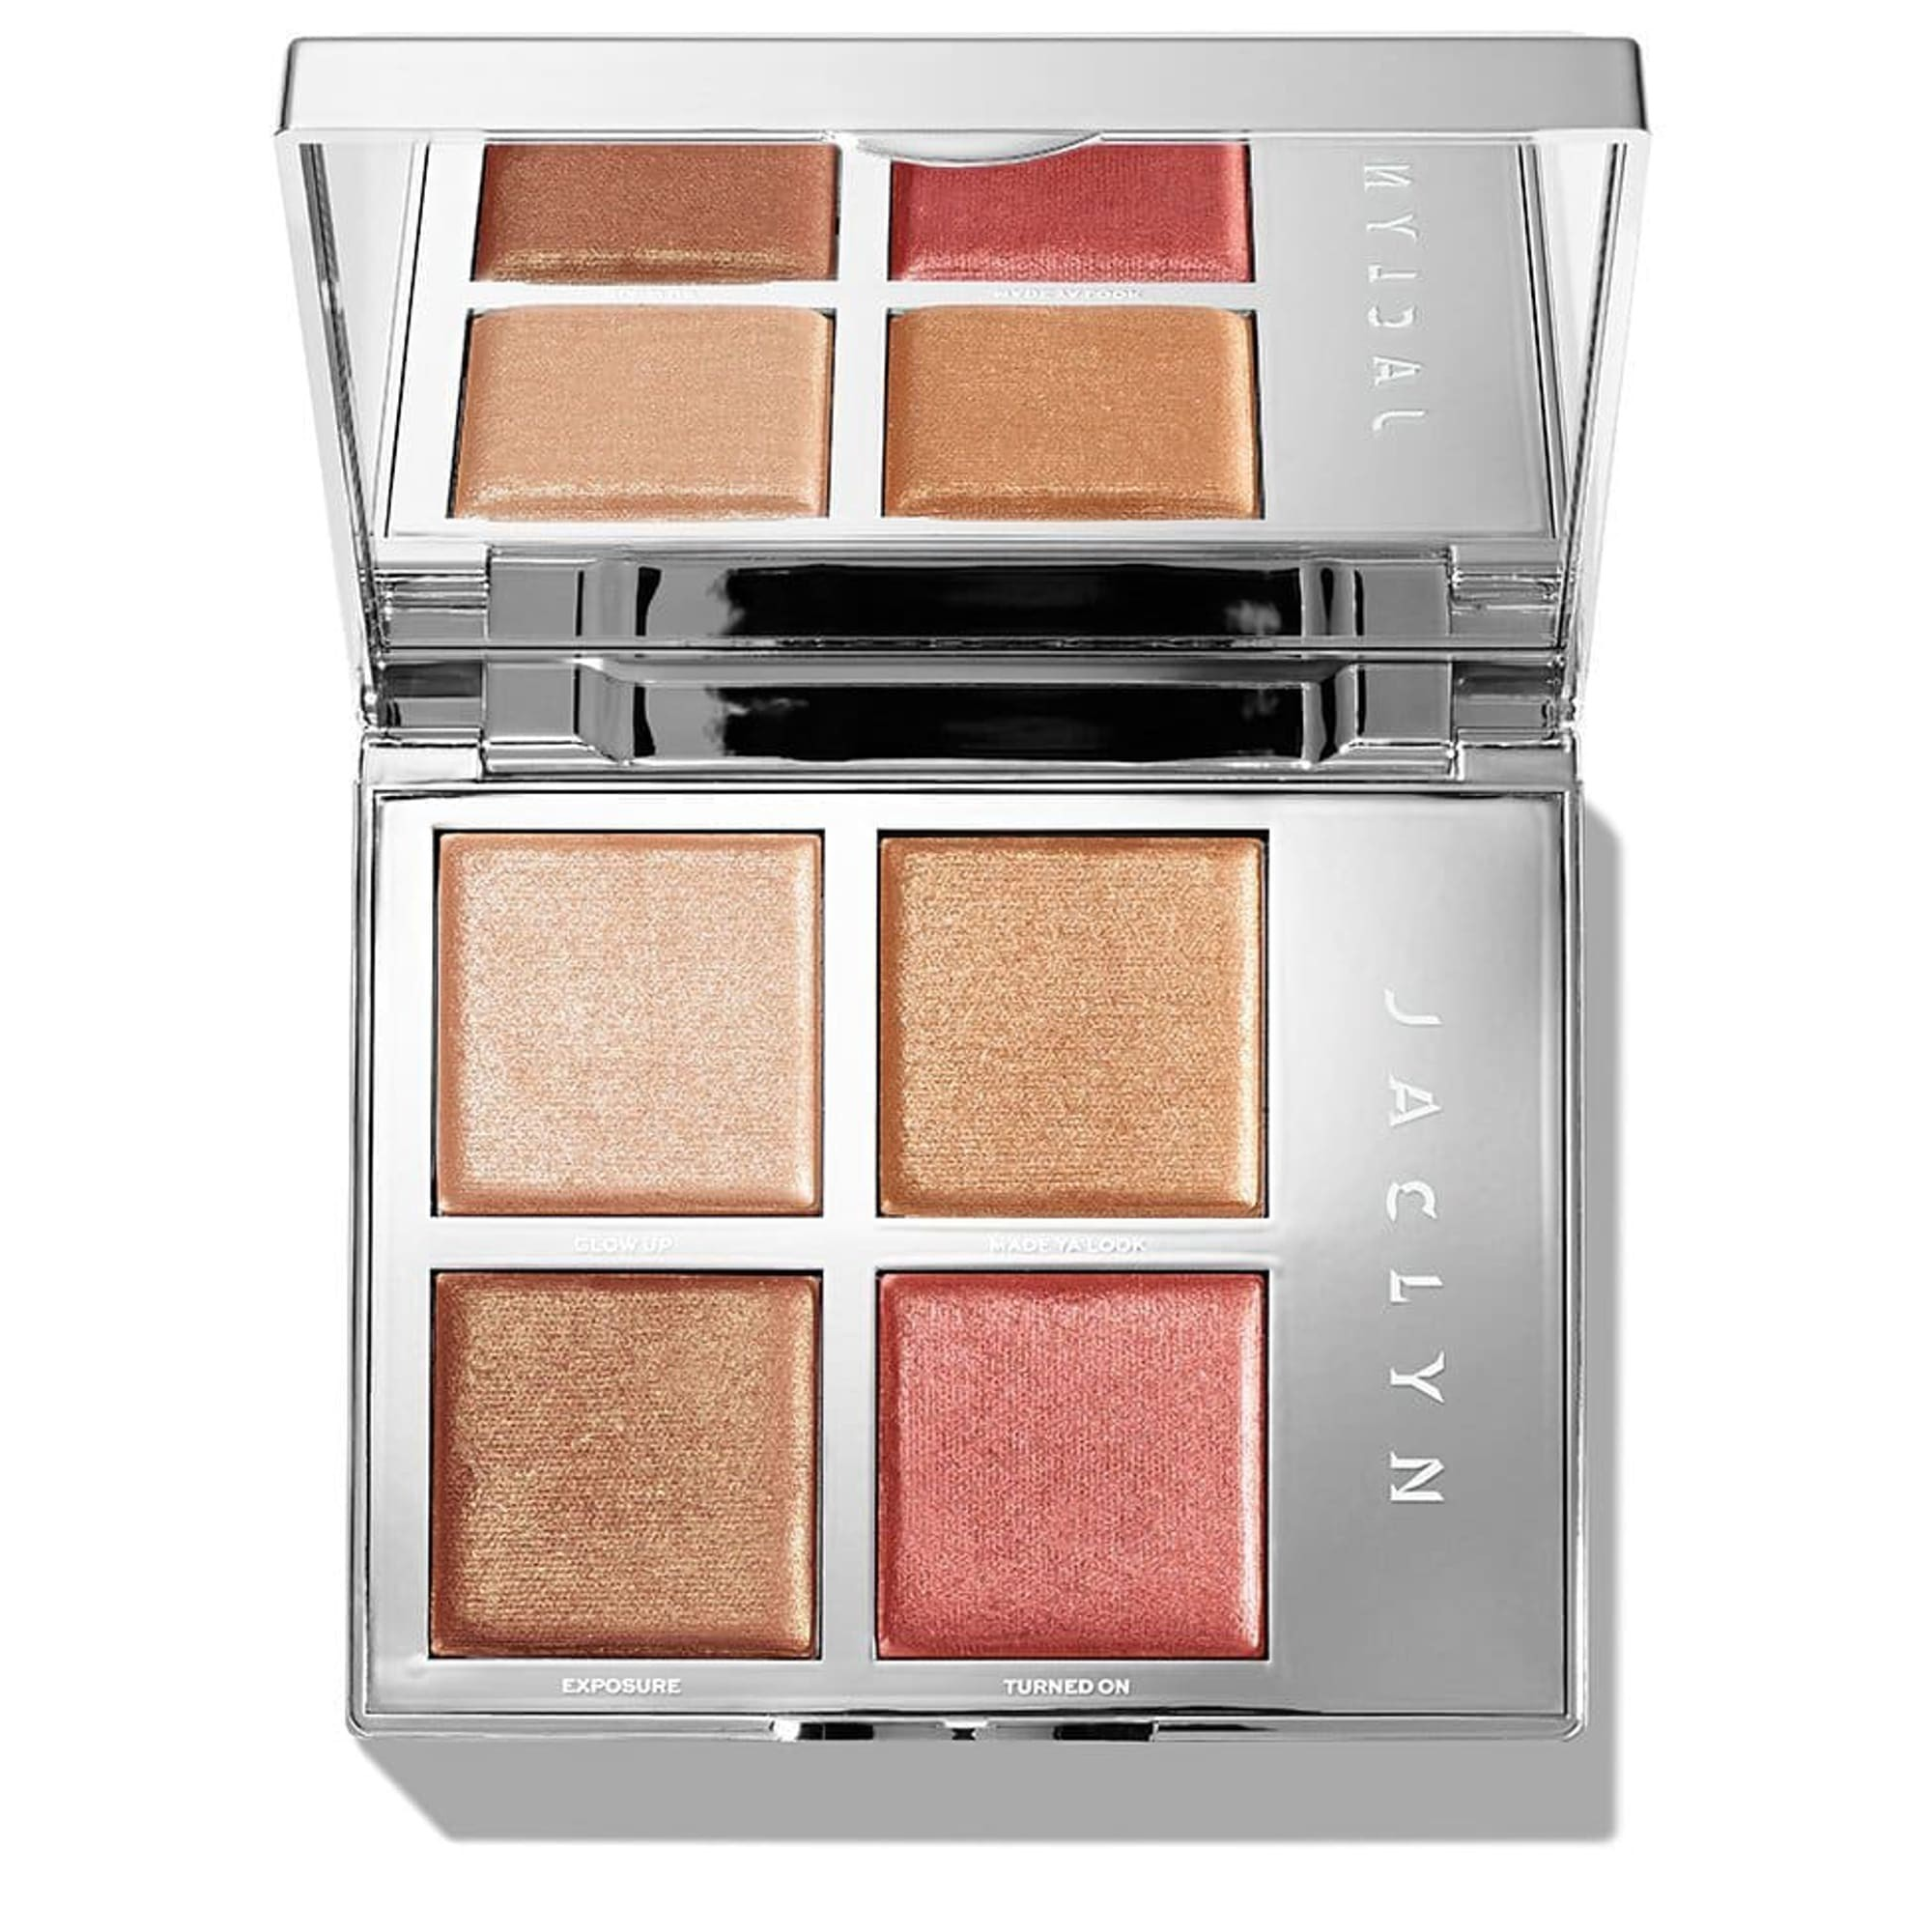 Jaclyn Cosmetics Accent Light Highlighter Palette The Flare